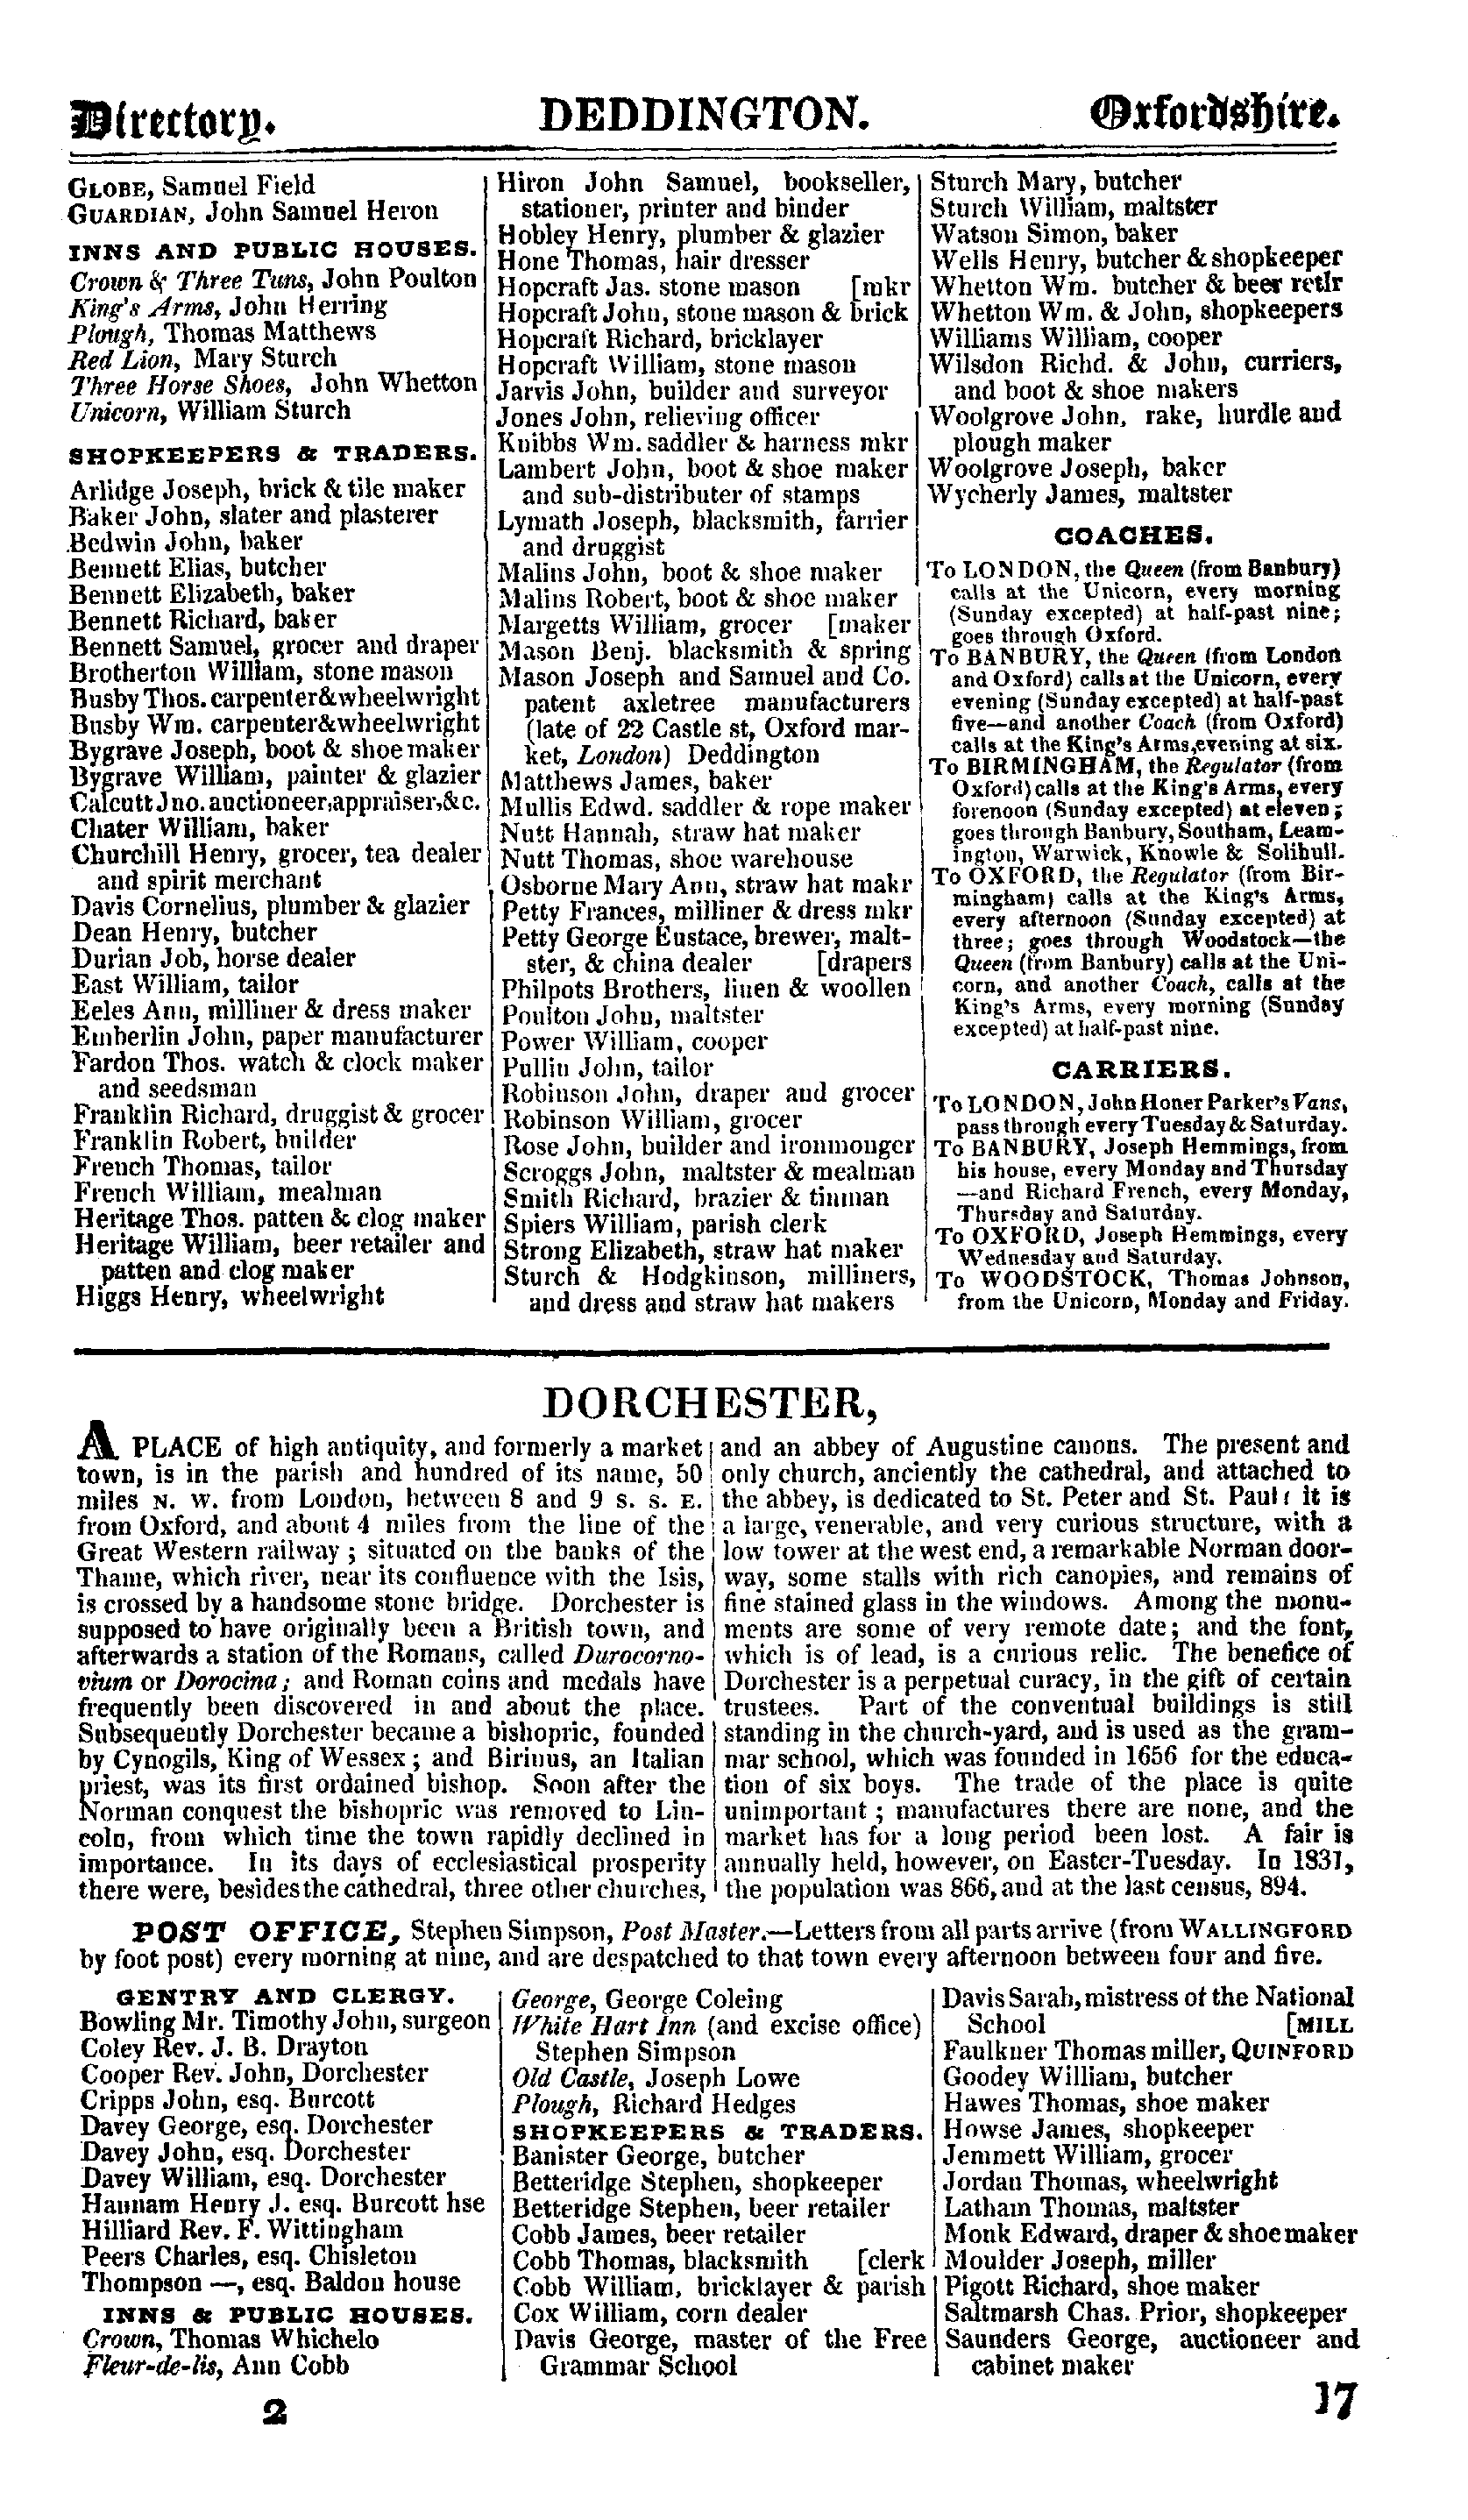 Pigot Directory of Oxfordshire, 1842 page 17 - click to open larger version in a new window